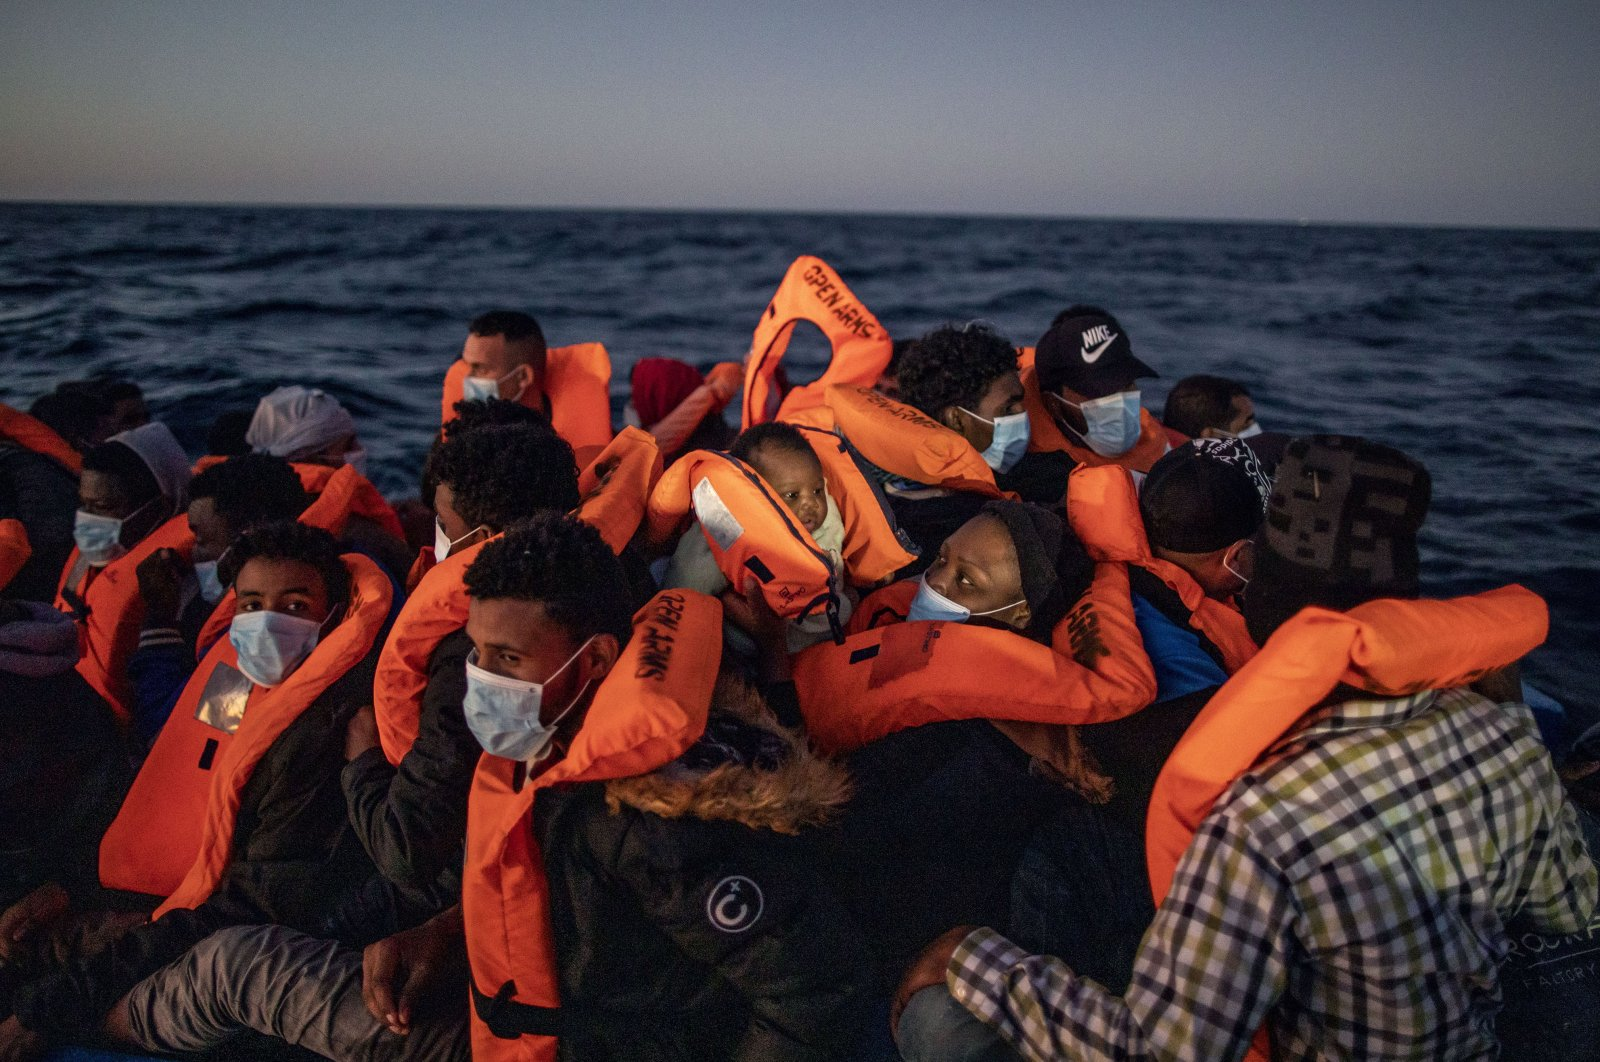 A woman holds a 3-month-old baby as migrants and refugees of different African nationalities wait for assistance on an overcrowded rubber boat from aid workers of the Spanish NGO Open Arms, 122 miles (around 196 kilometers) off the Libyan coast, Feb 12, 2021. (AP Photo)